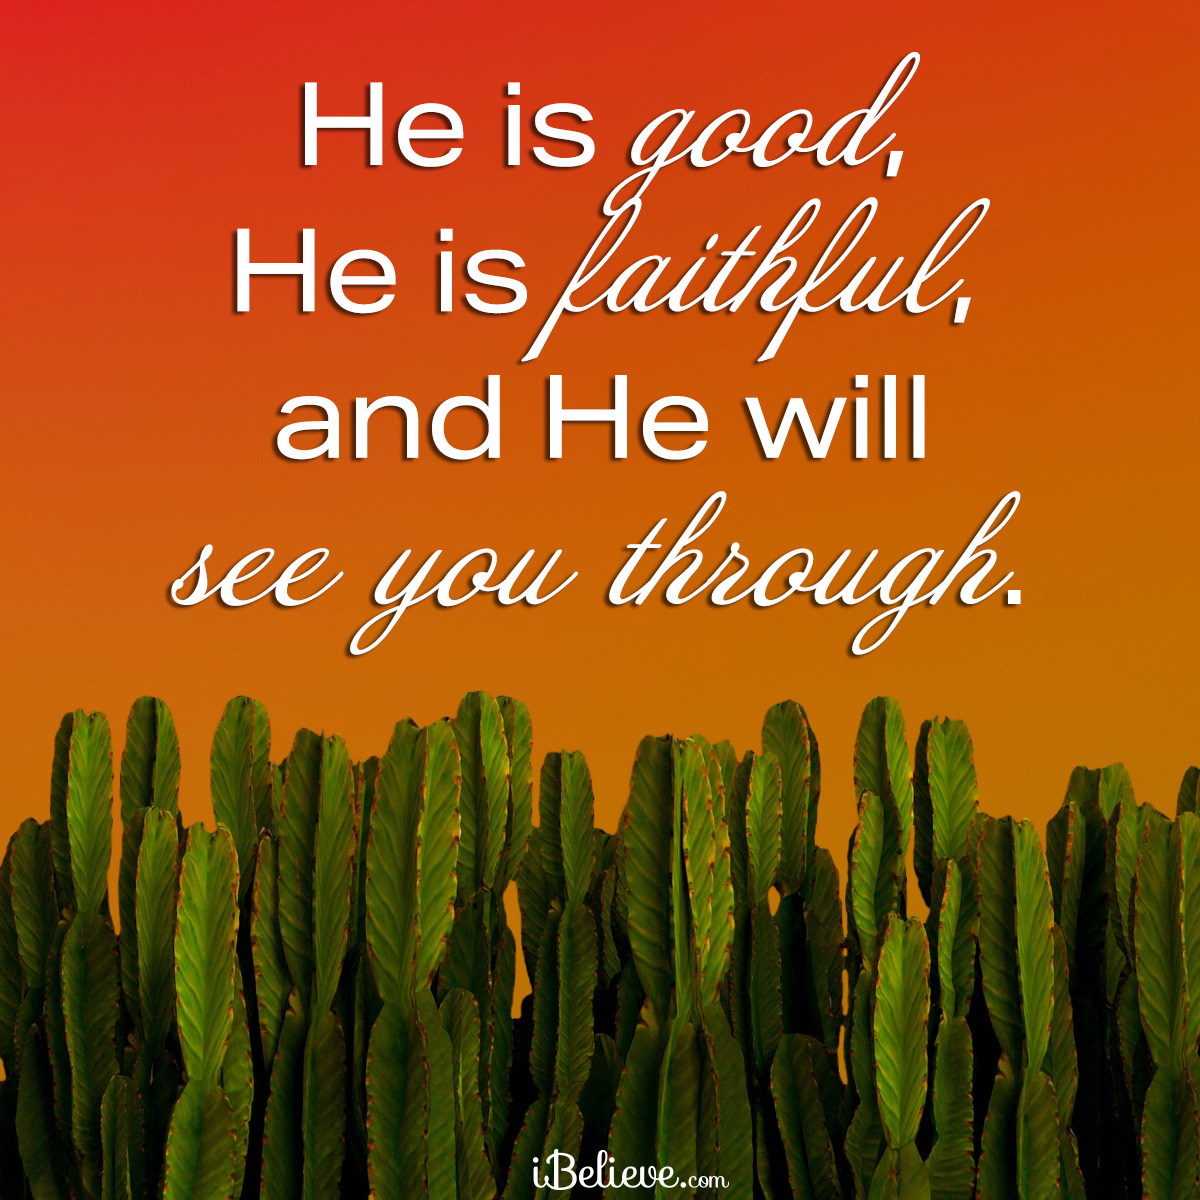 God will see you through, inspirational image